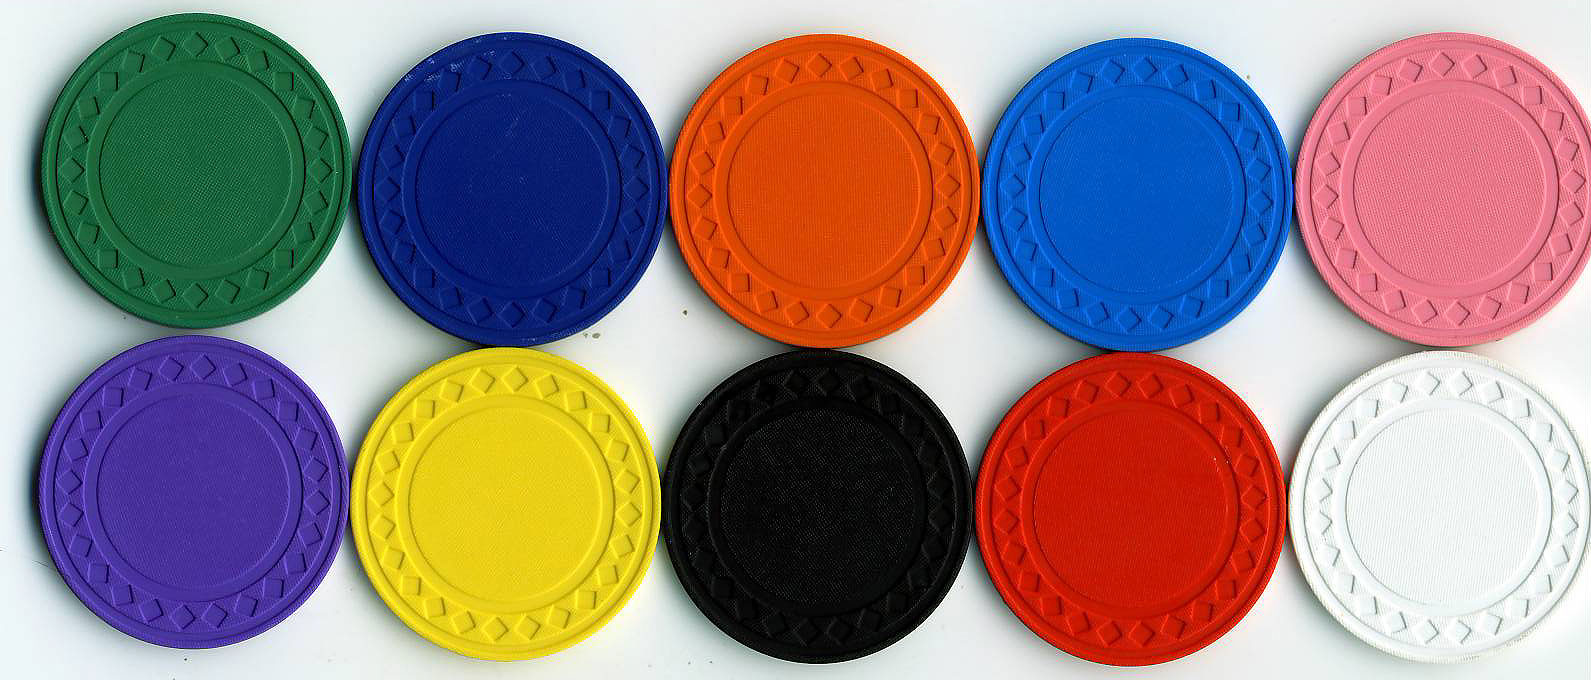 Solid color poker chips casino de paris dunes hotel las vegas